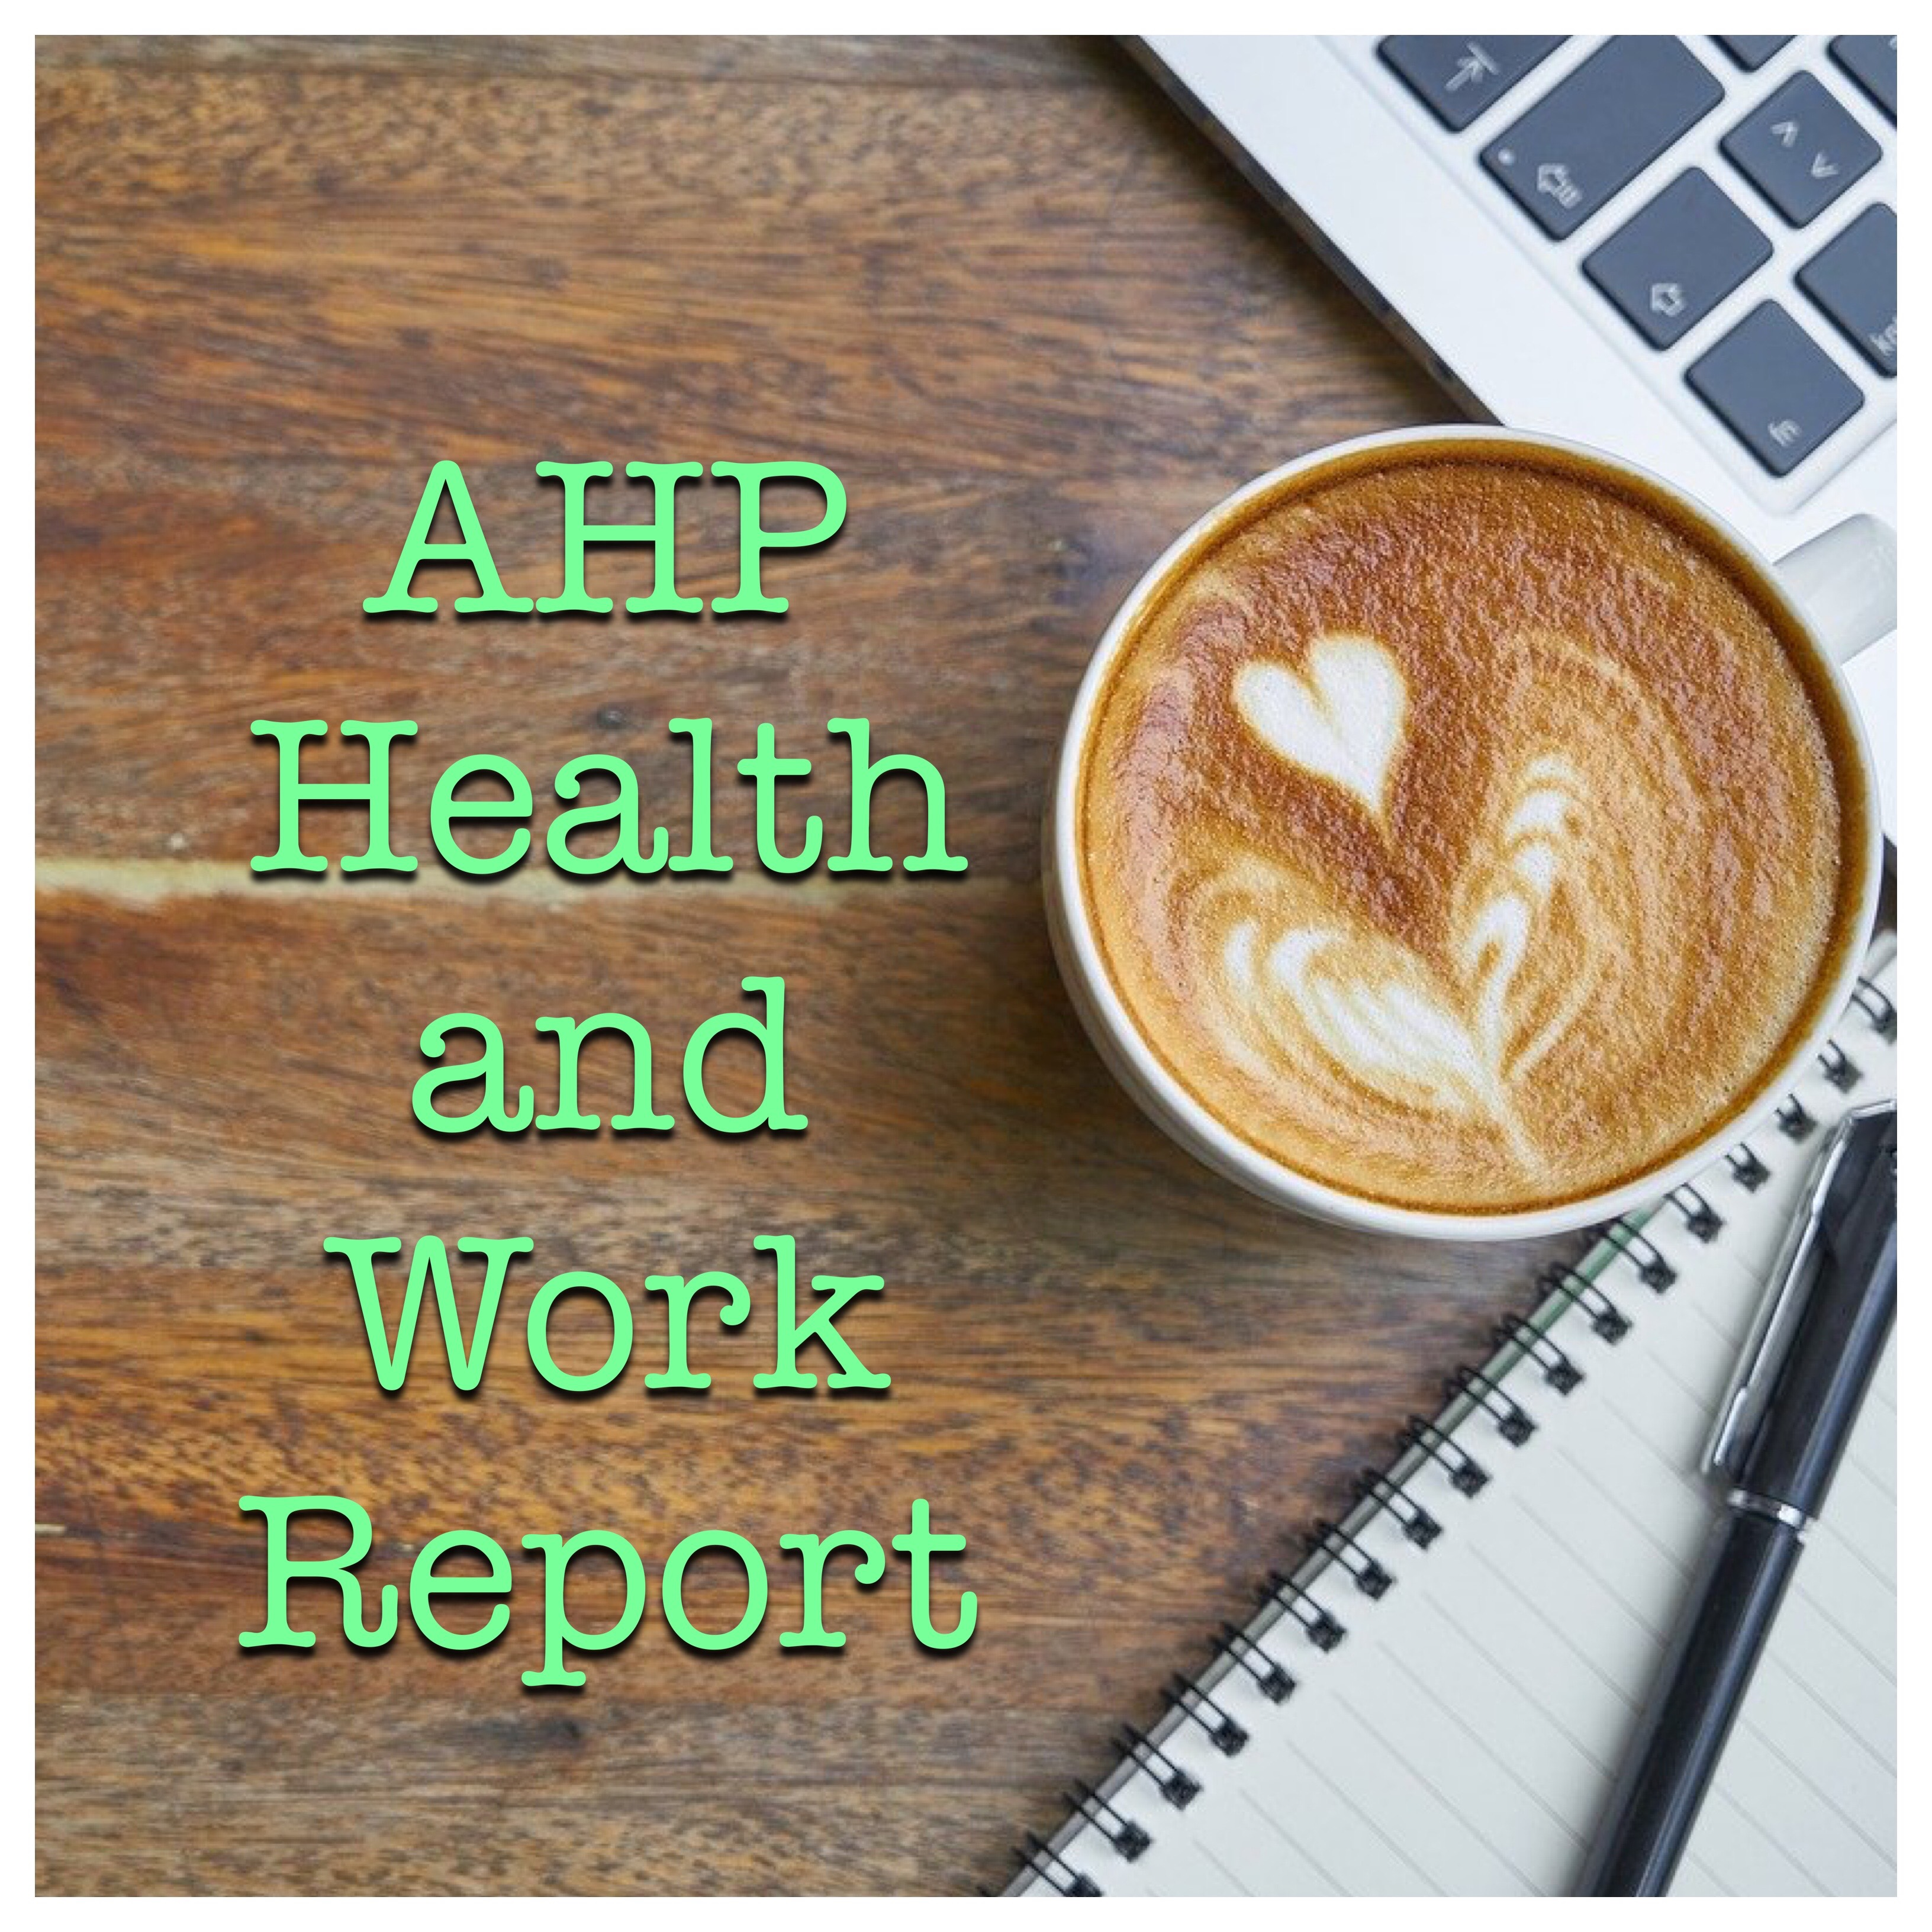 AHP Health and Work Report (coffee table and notebook)